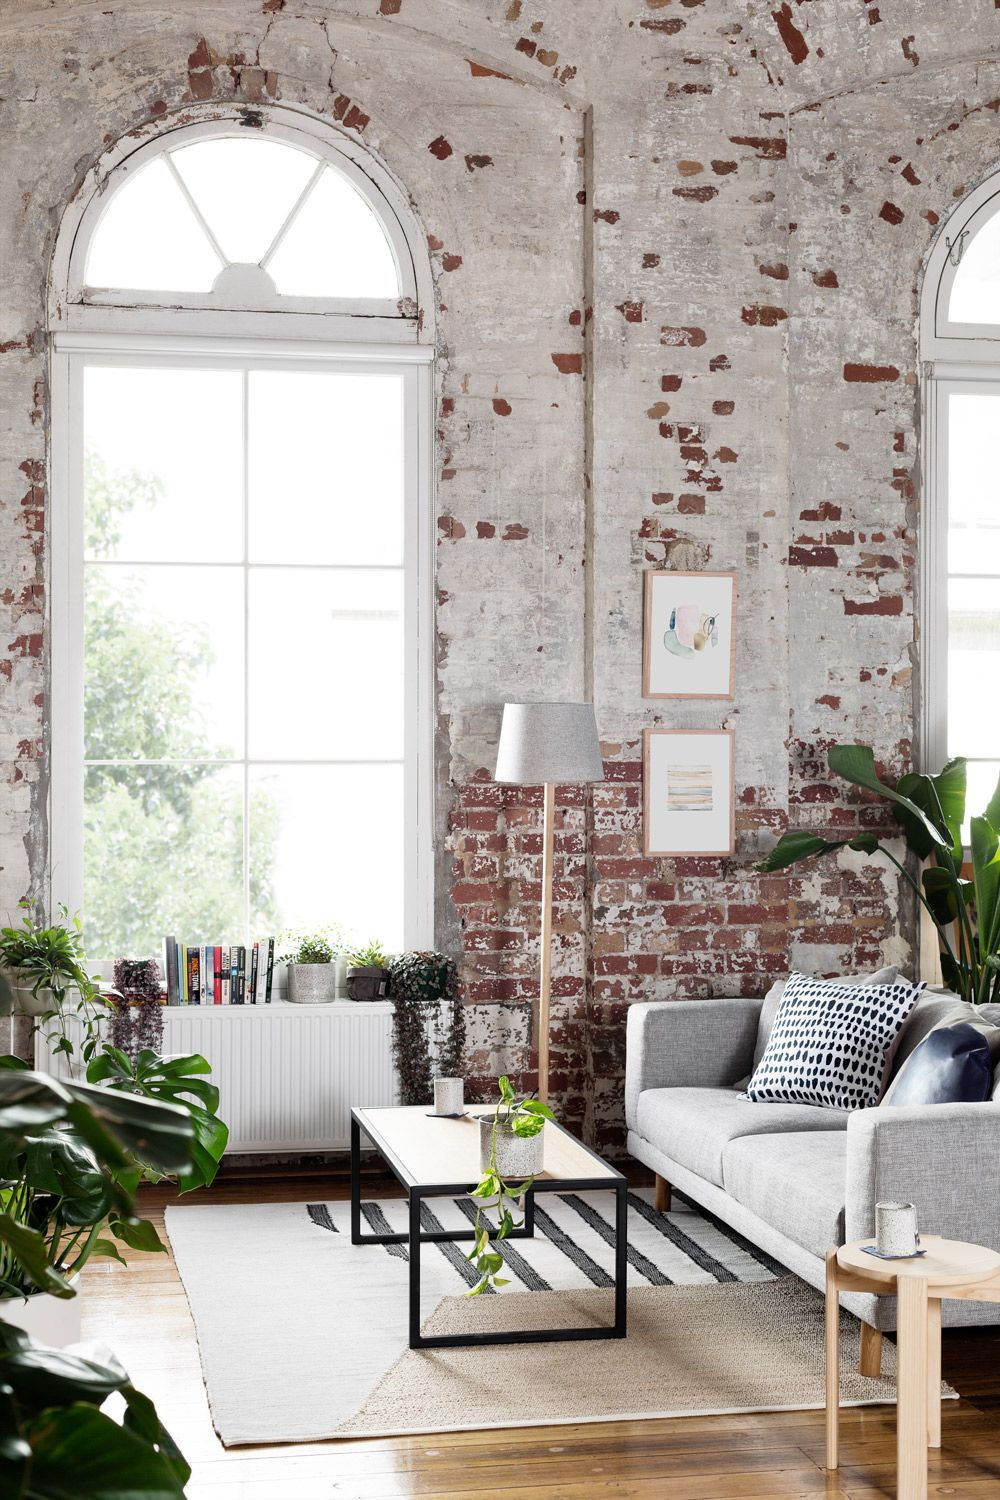 Fab Open Plan Interior Ideas by Hunting For George | Pinterest ...